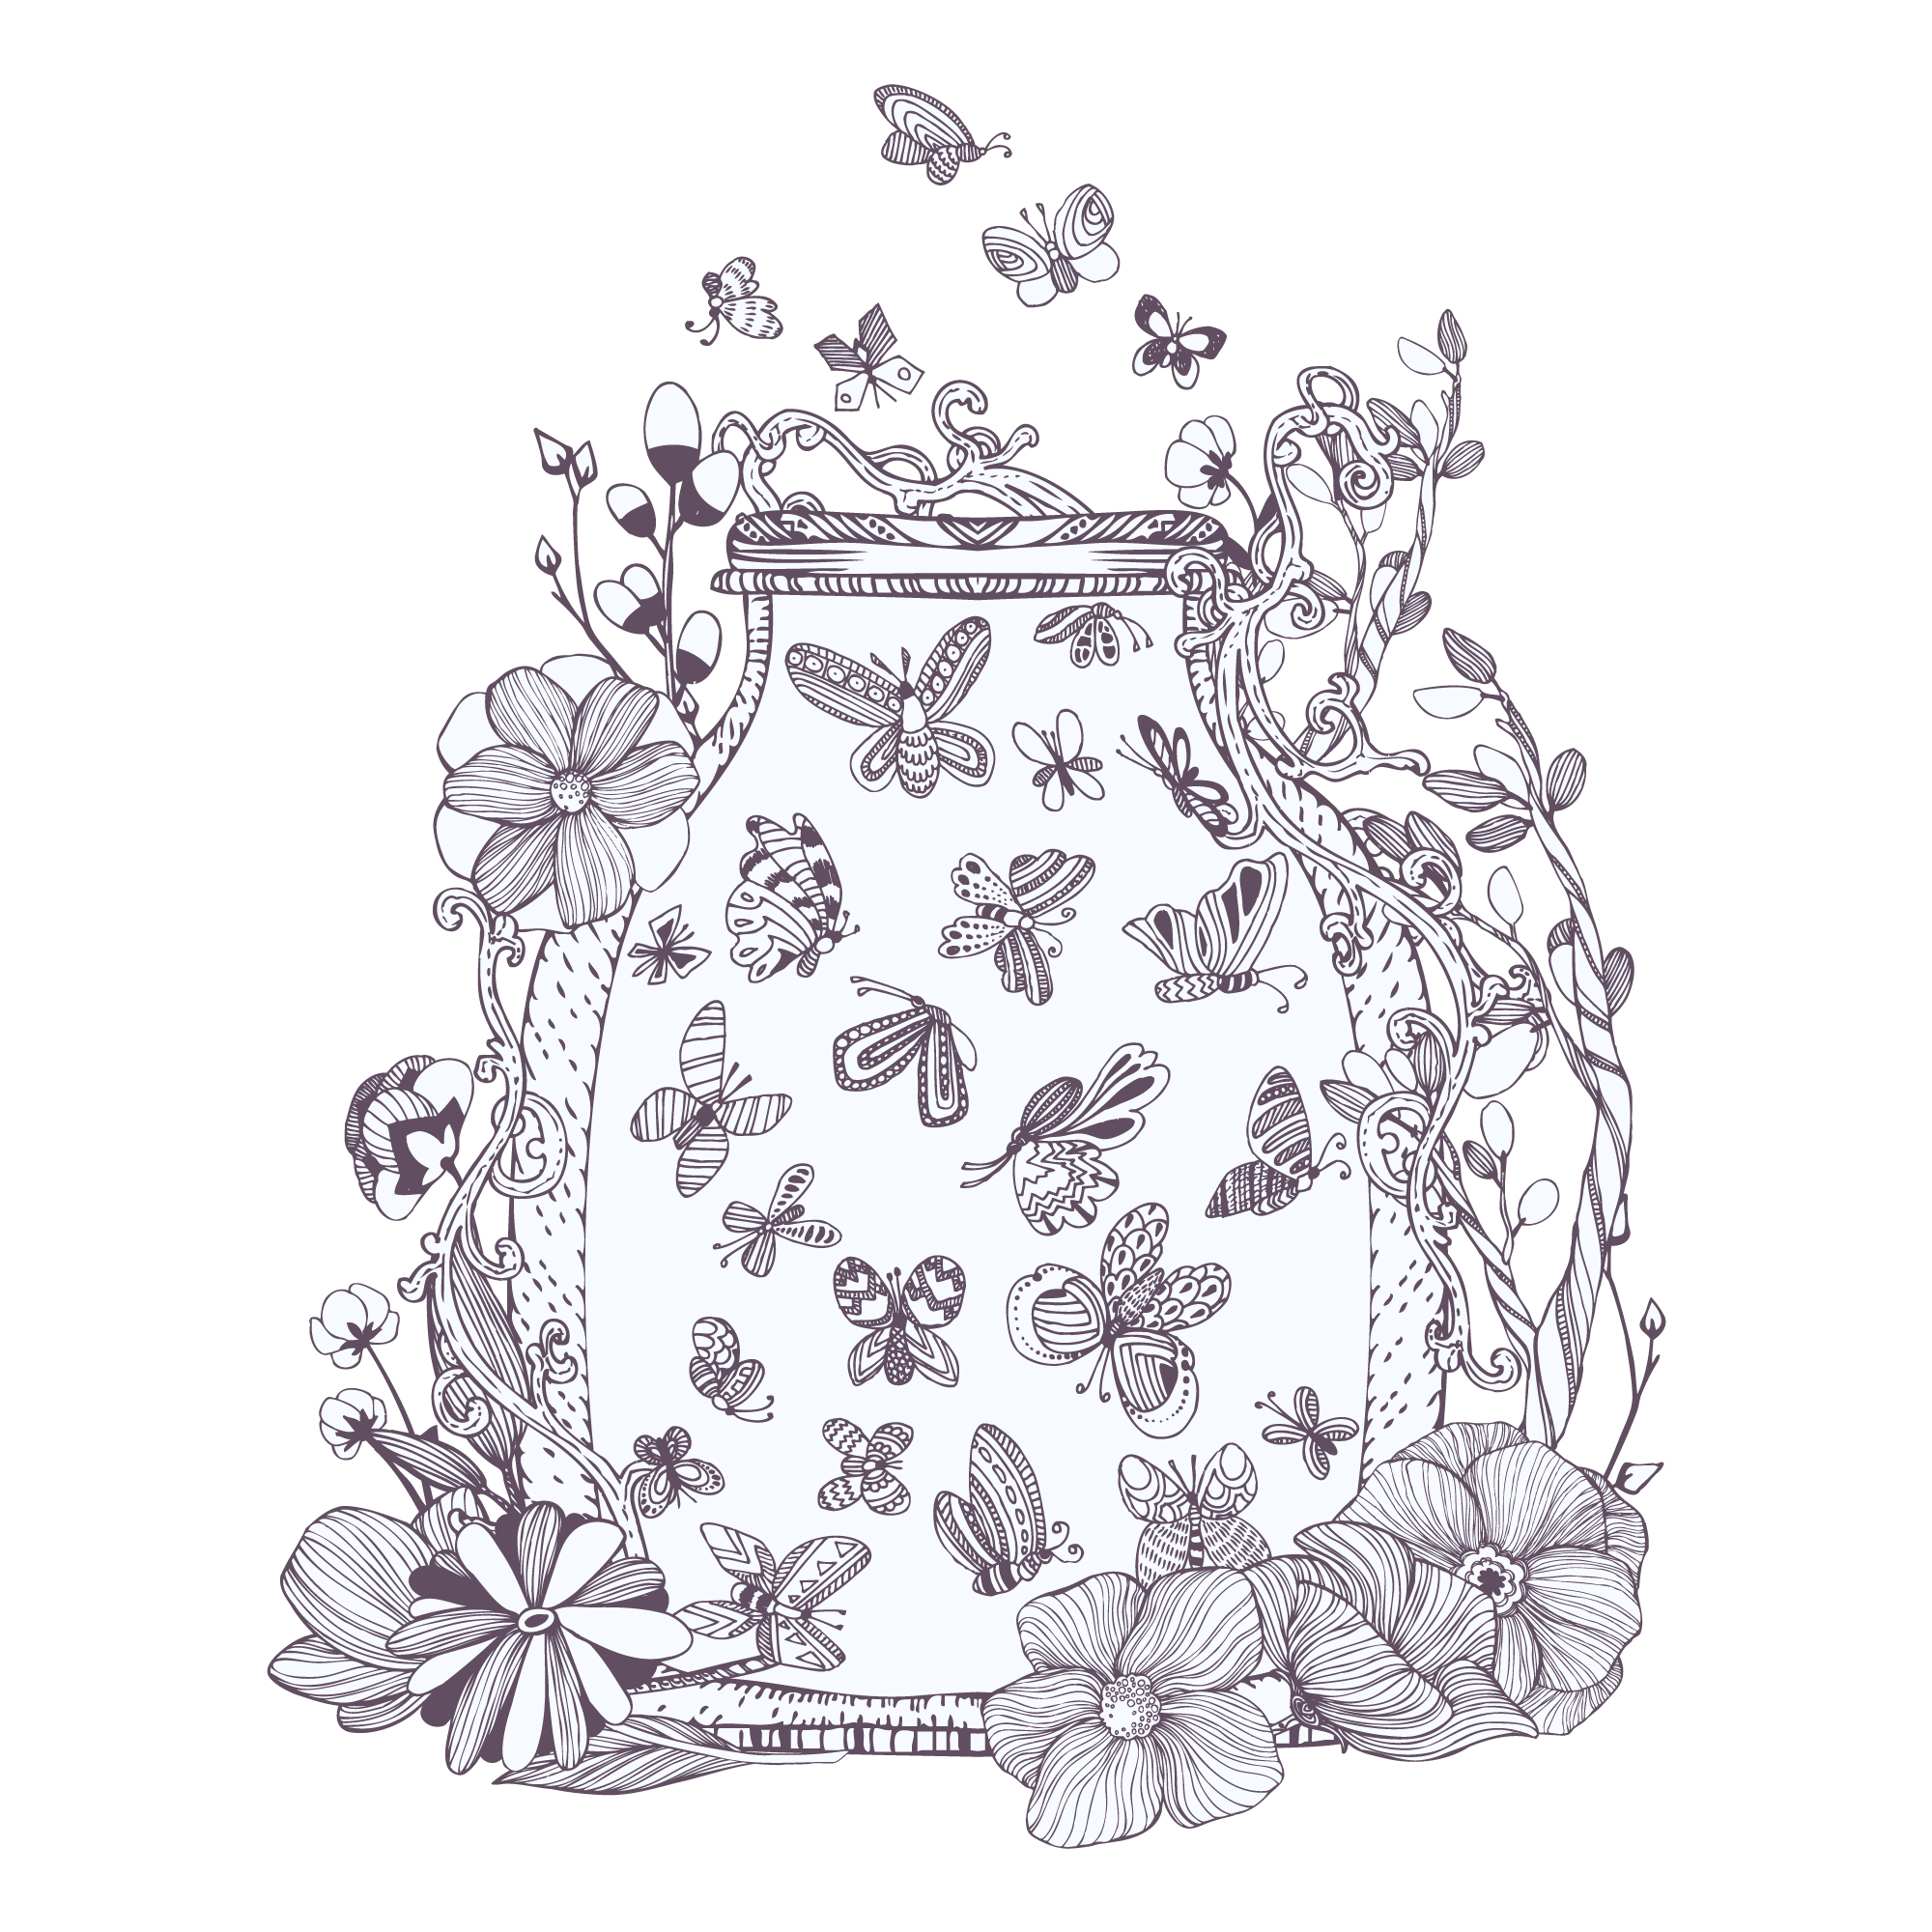 Jar full of butterflies illustration